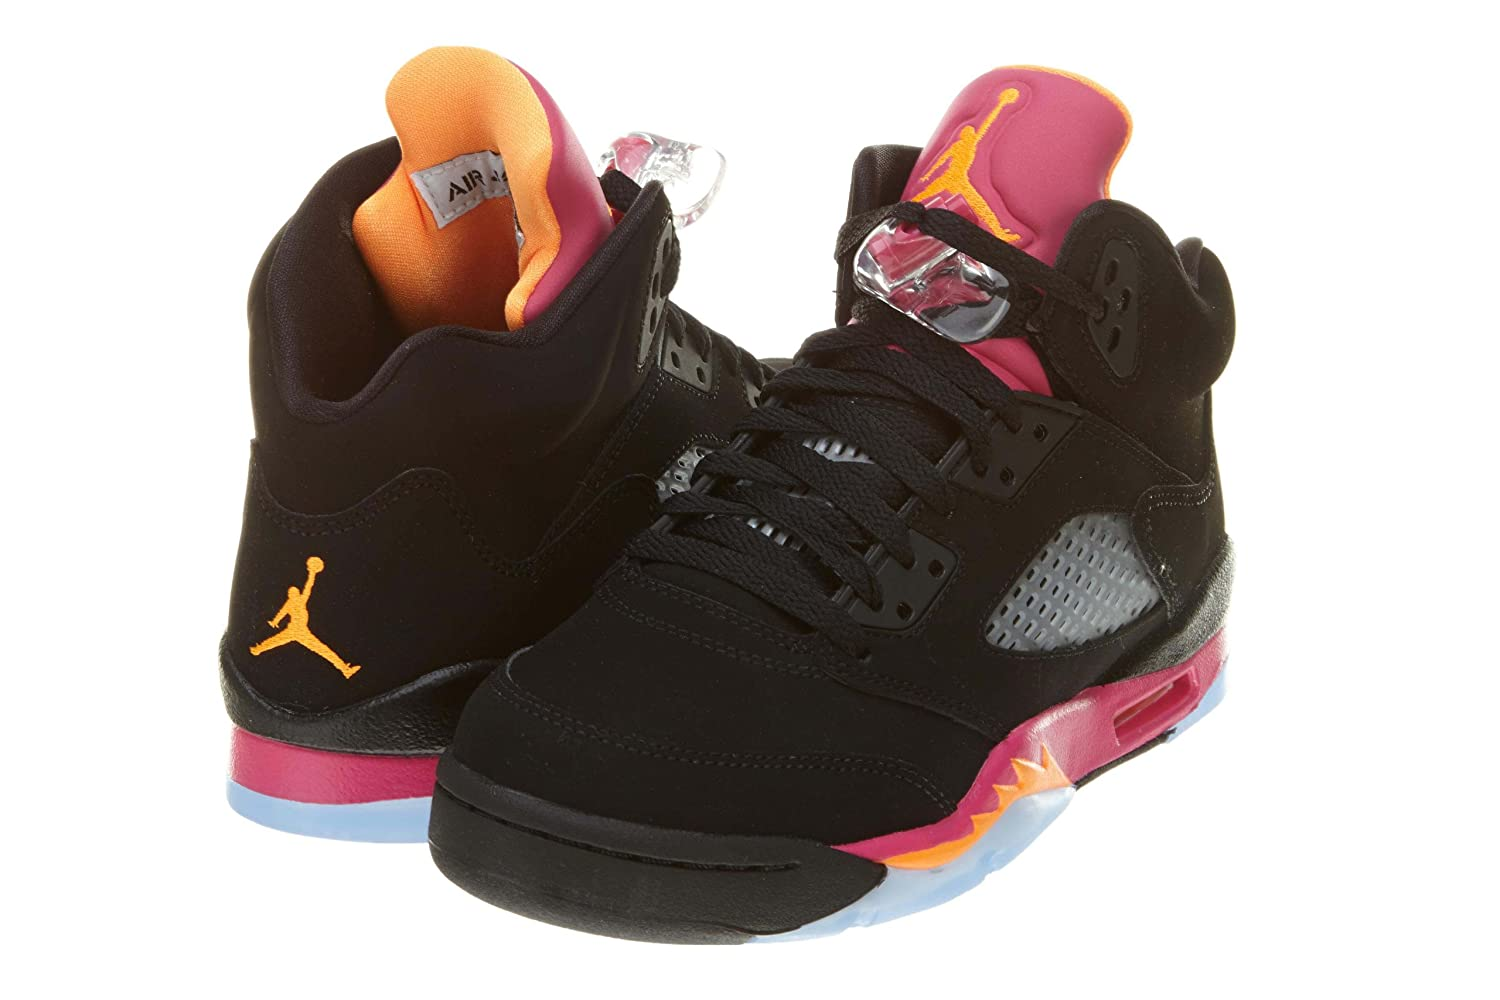 super popular be2a0 74b4a Girls Air Jordan 5 Retro (GS)  Floridian  - 440892-067 -